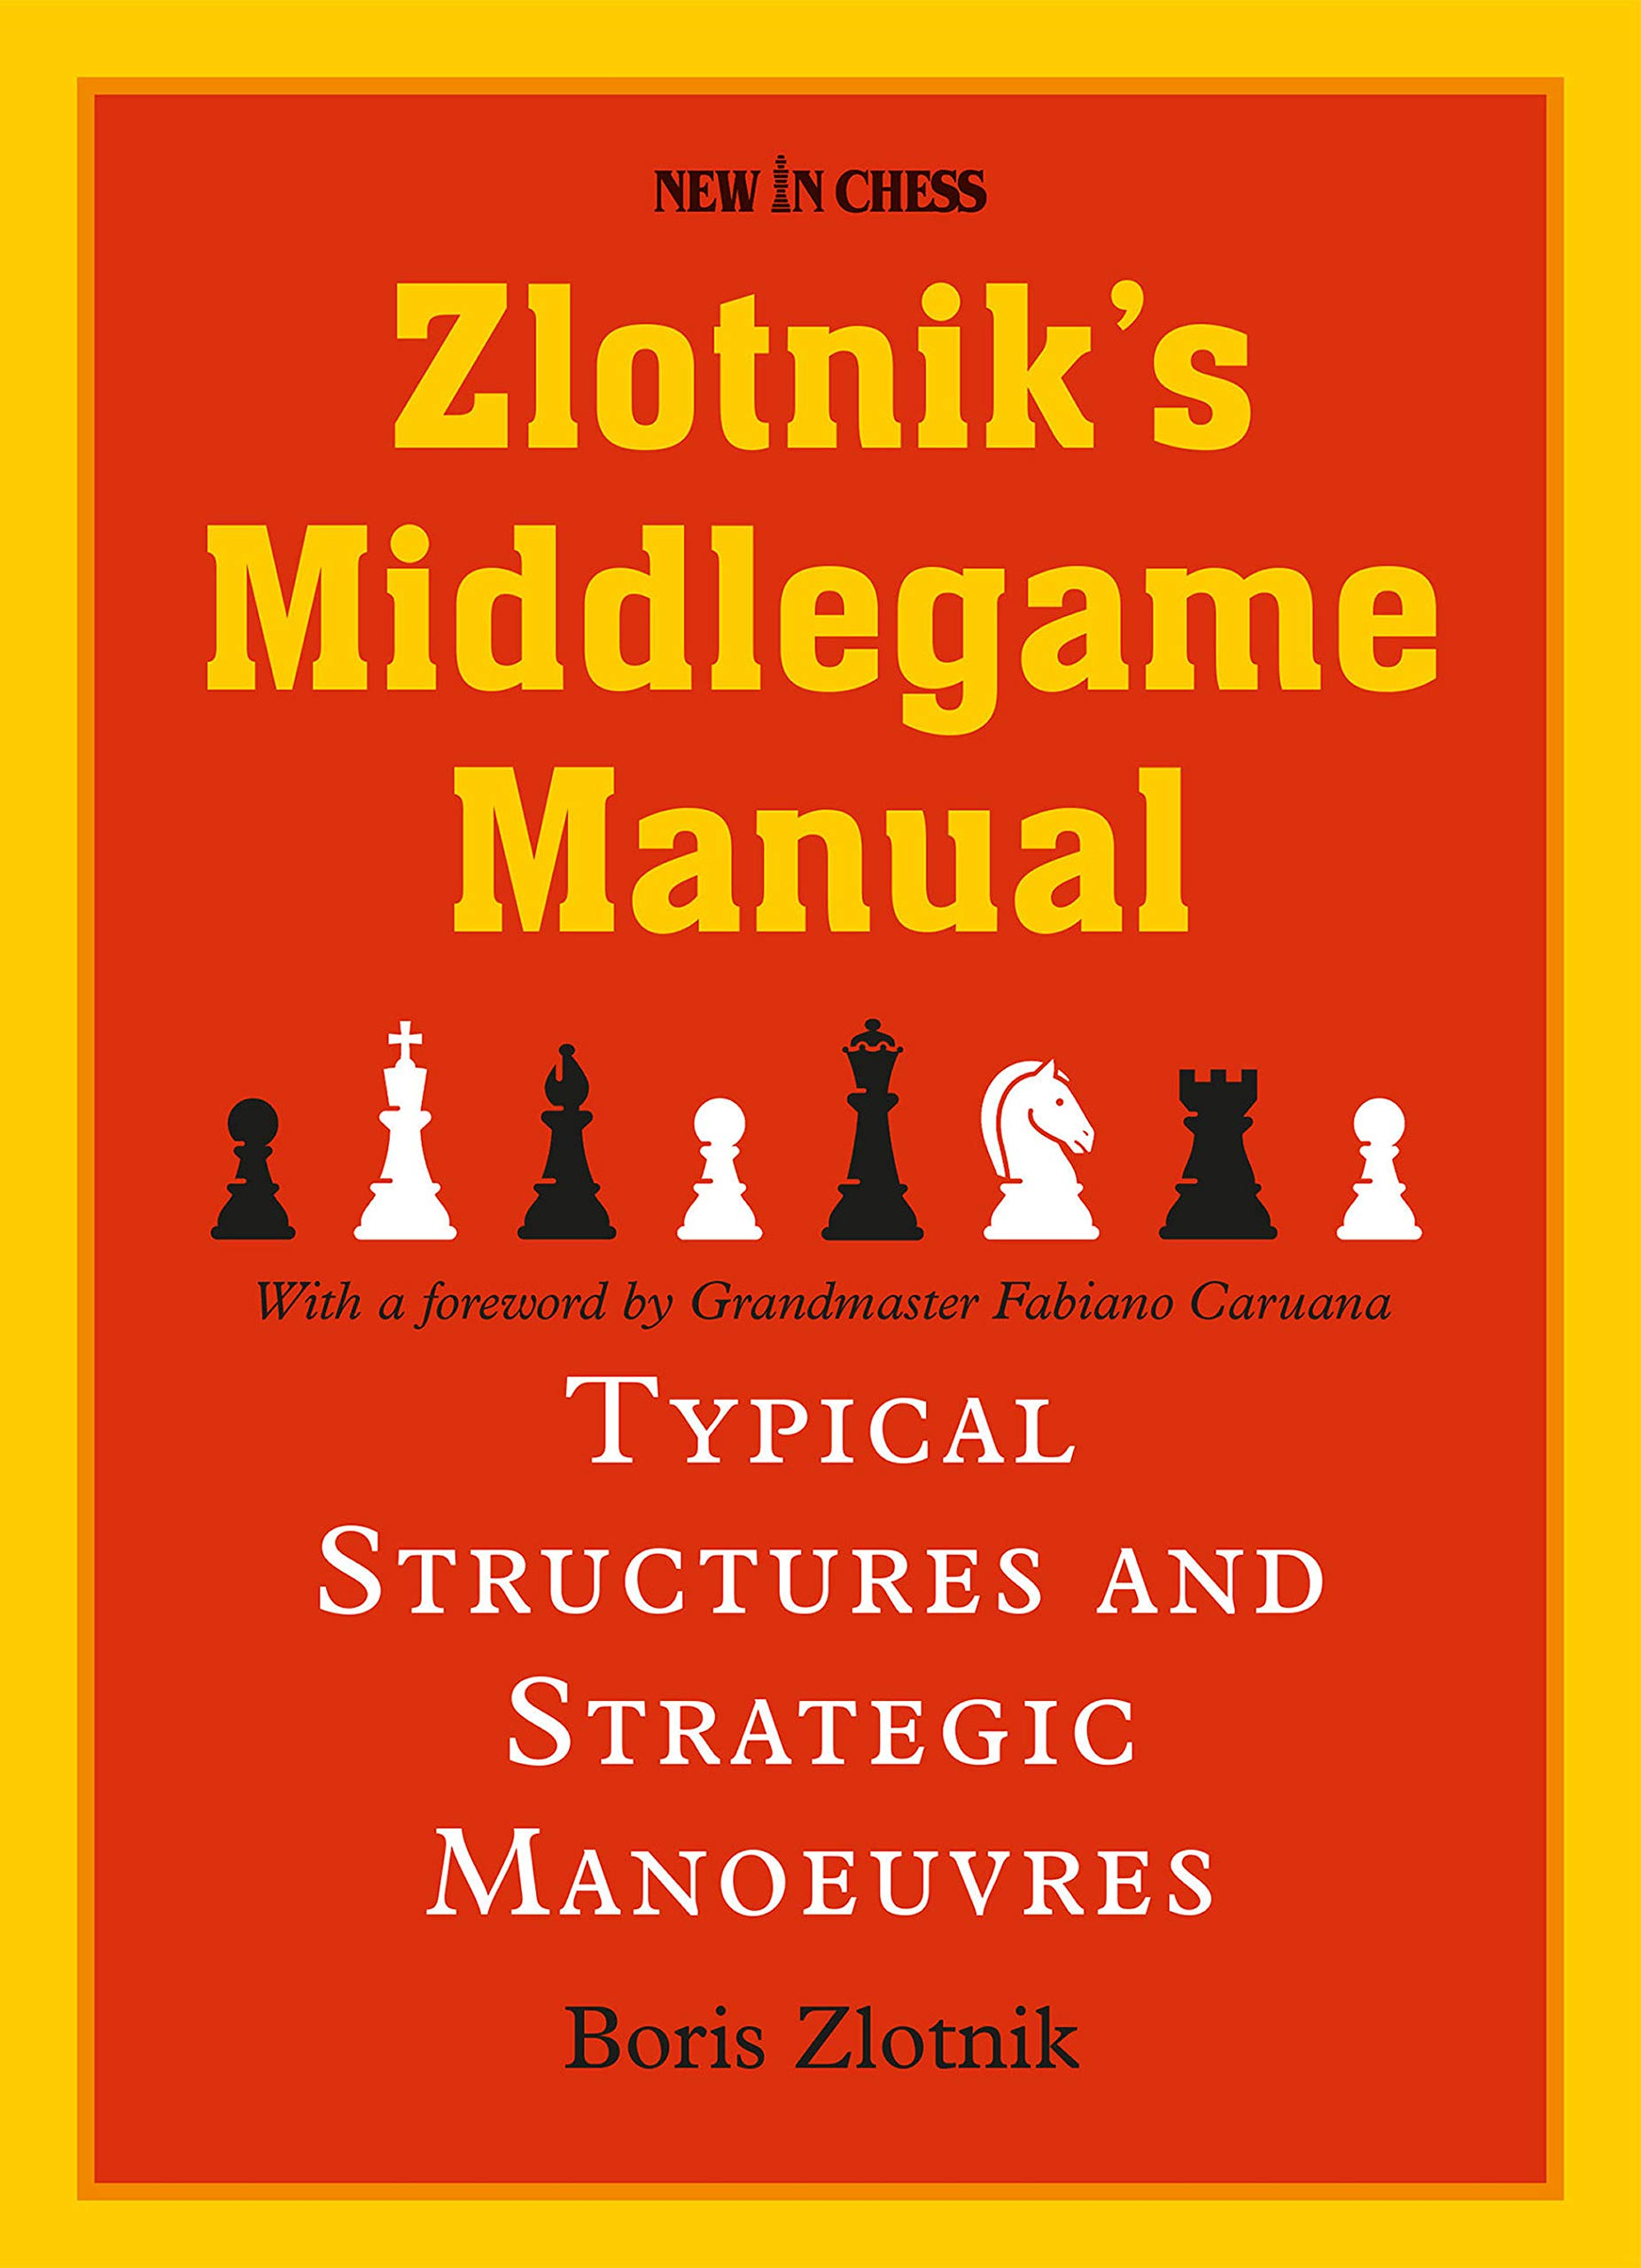 Zlotnik's Middlegame Manual - Typical Structures And Strategic Manoeuvres,  Boris Zlotnik, New in Chess, 7th December 2020, 7th December 2020, ISBN-13  :  978-9056919269